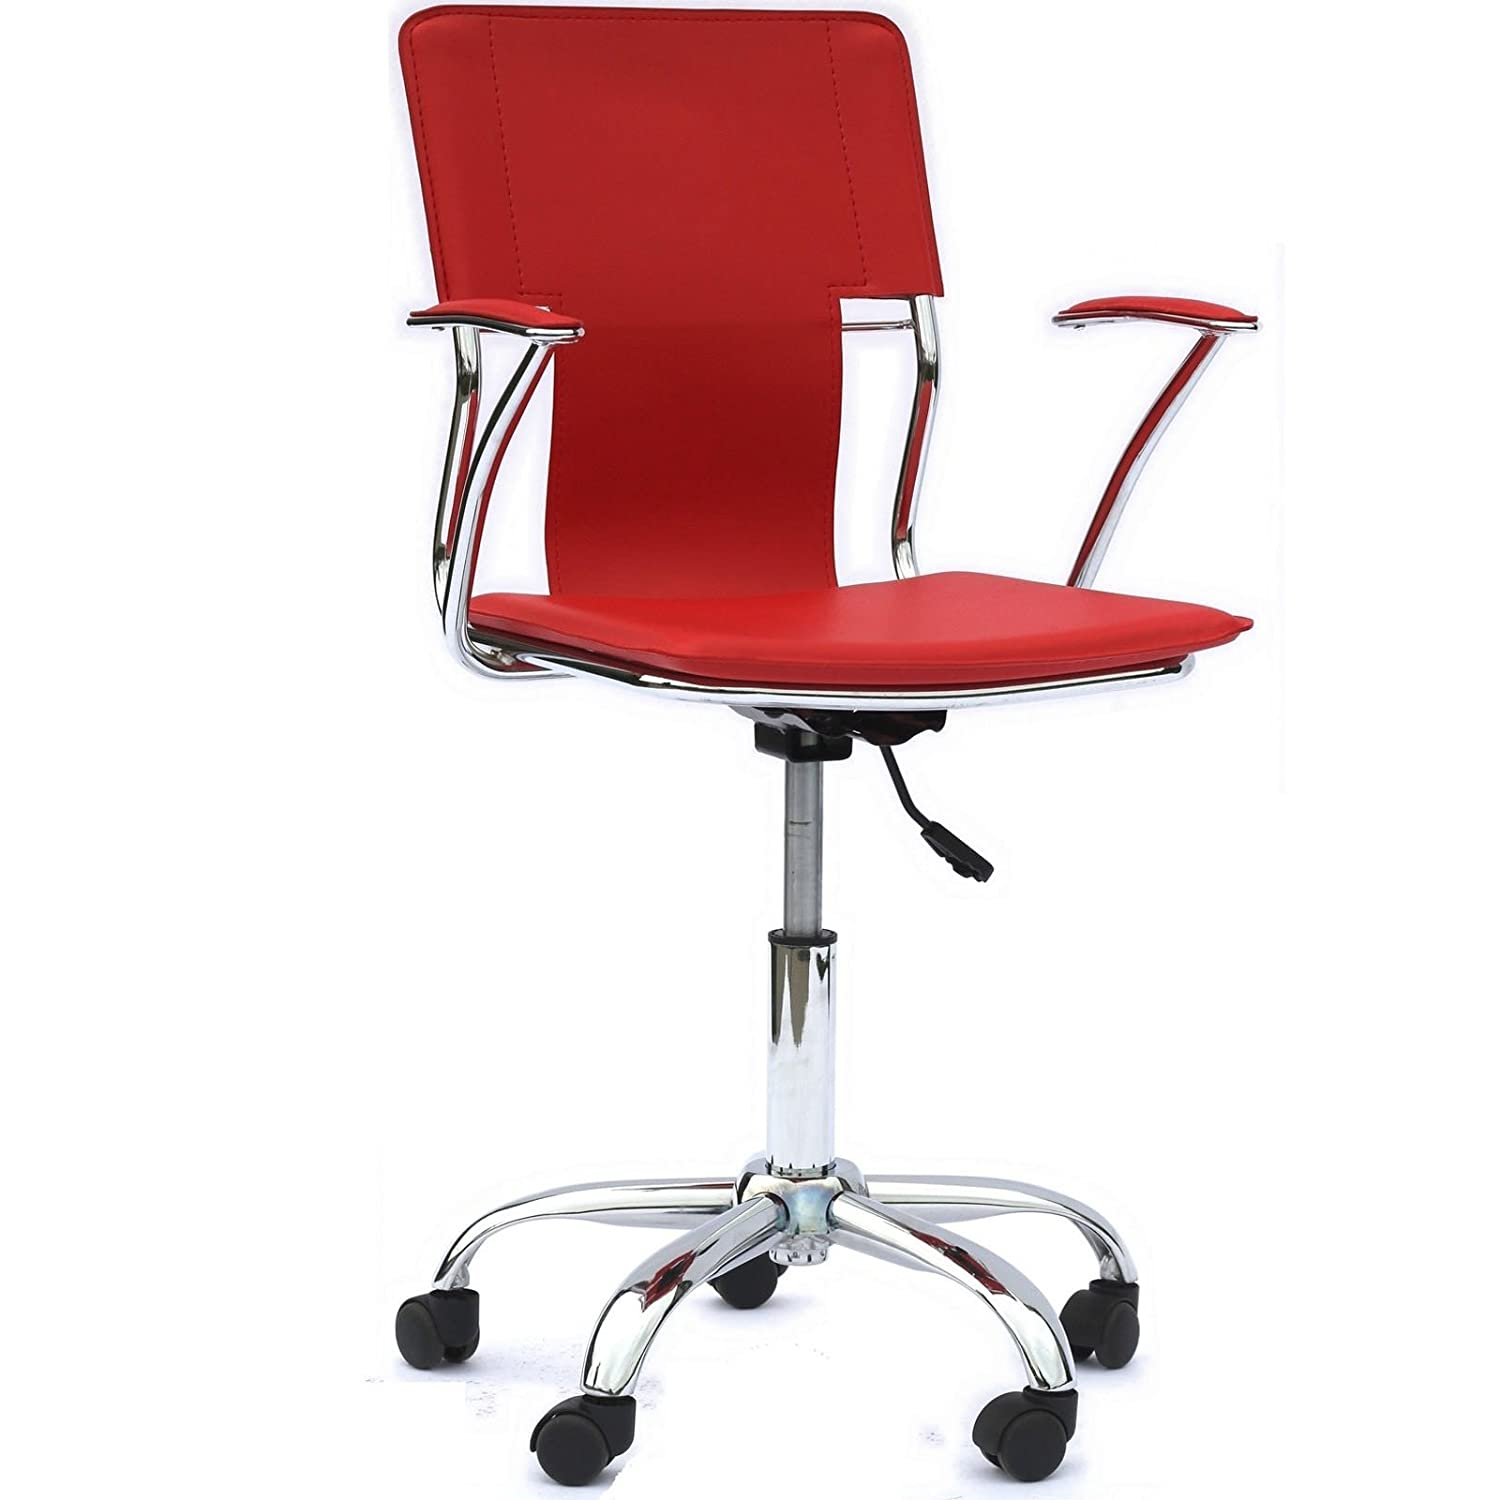 Amazon Modway Studio fice Chair in Red Vinyl Kitchen & Dining